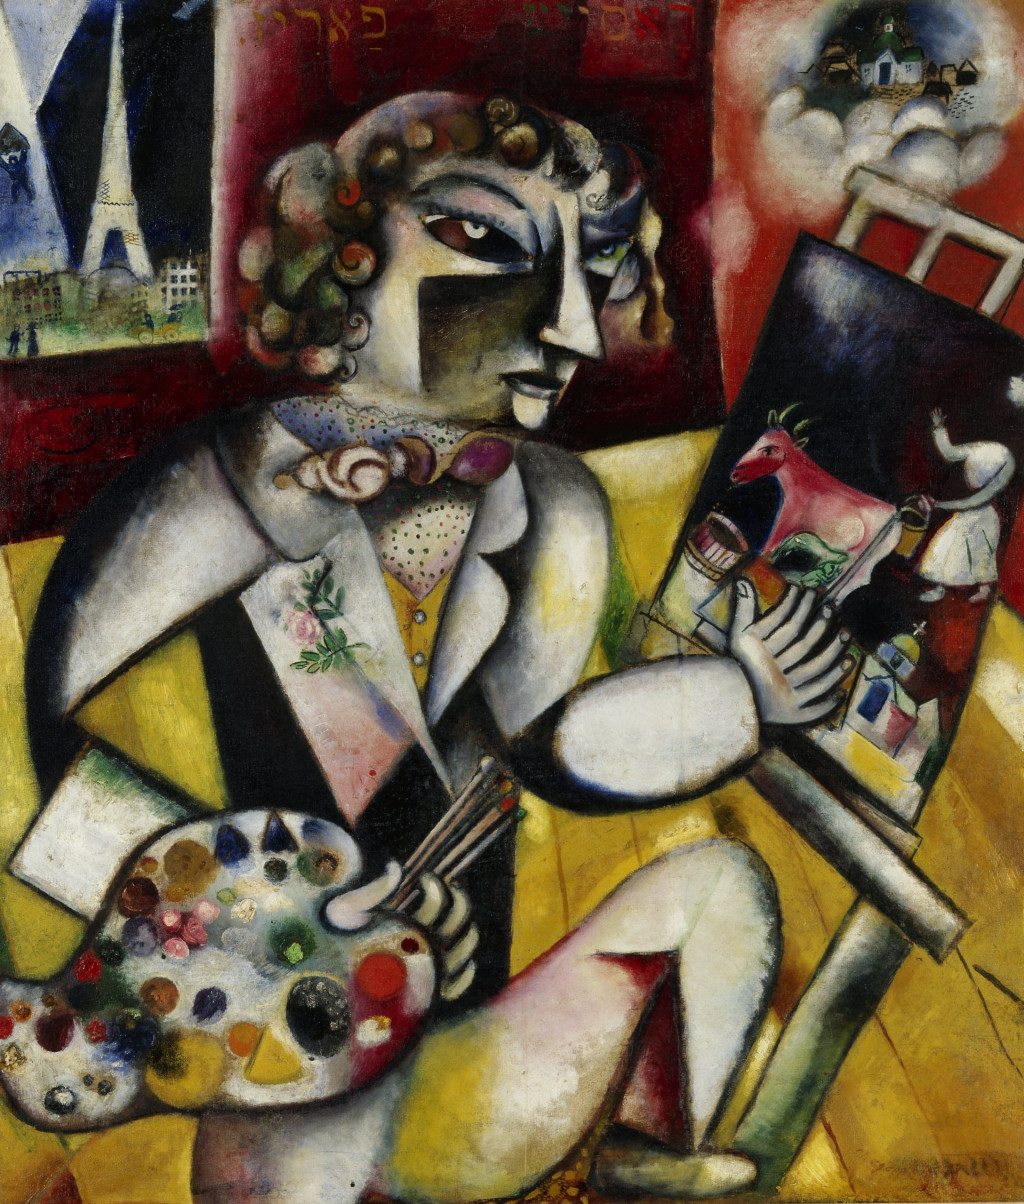 Marc Chagall, 'Self-Portrait with Seven Fingers', 1912-13